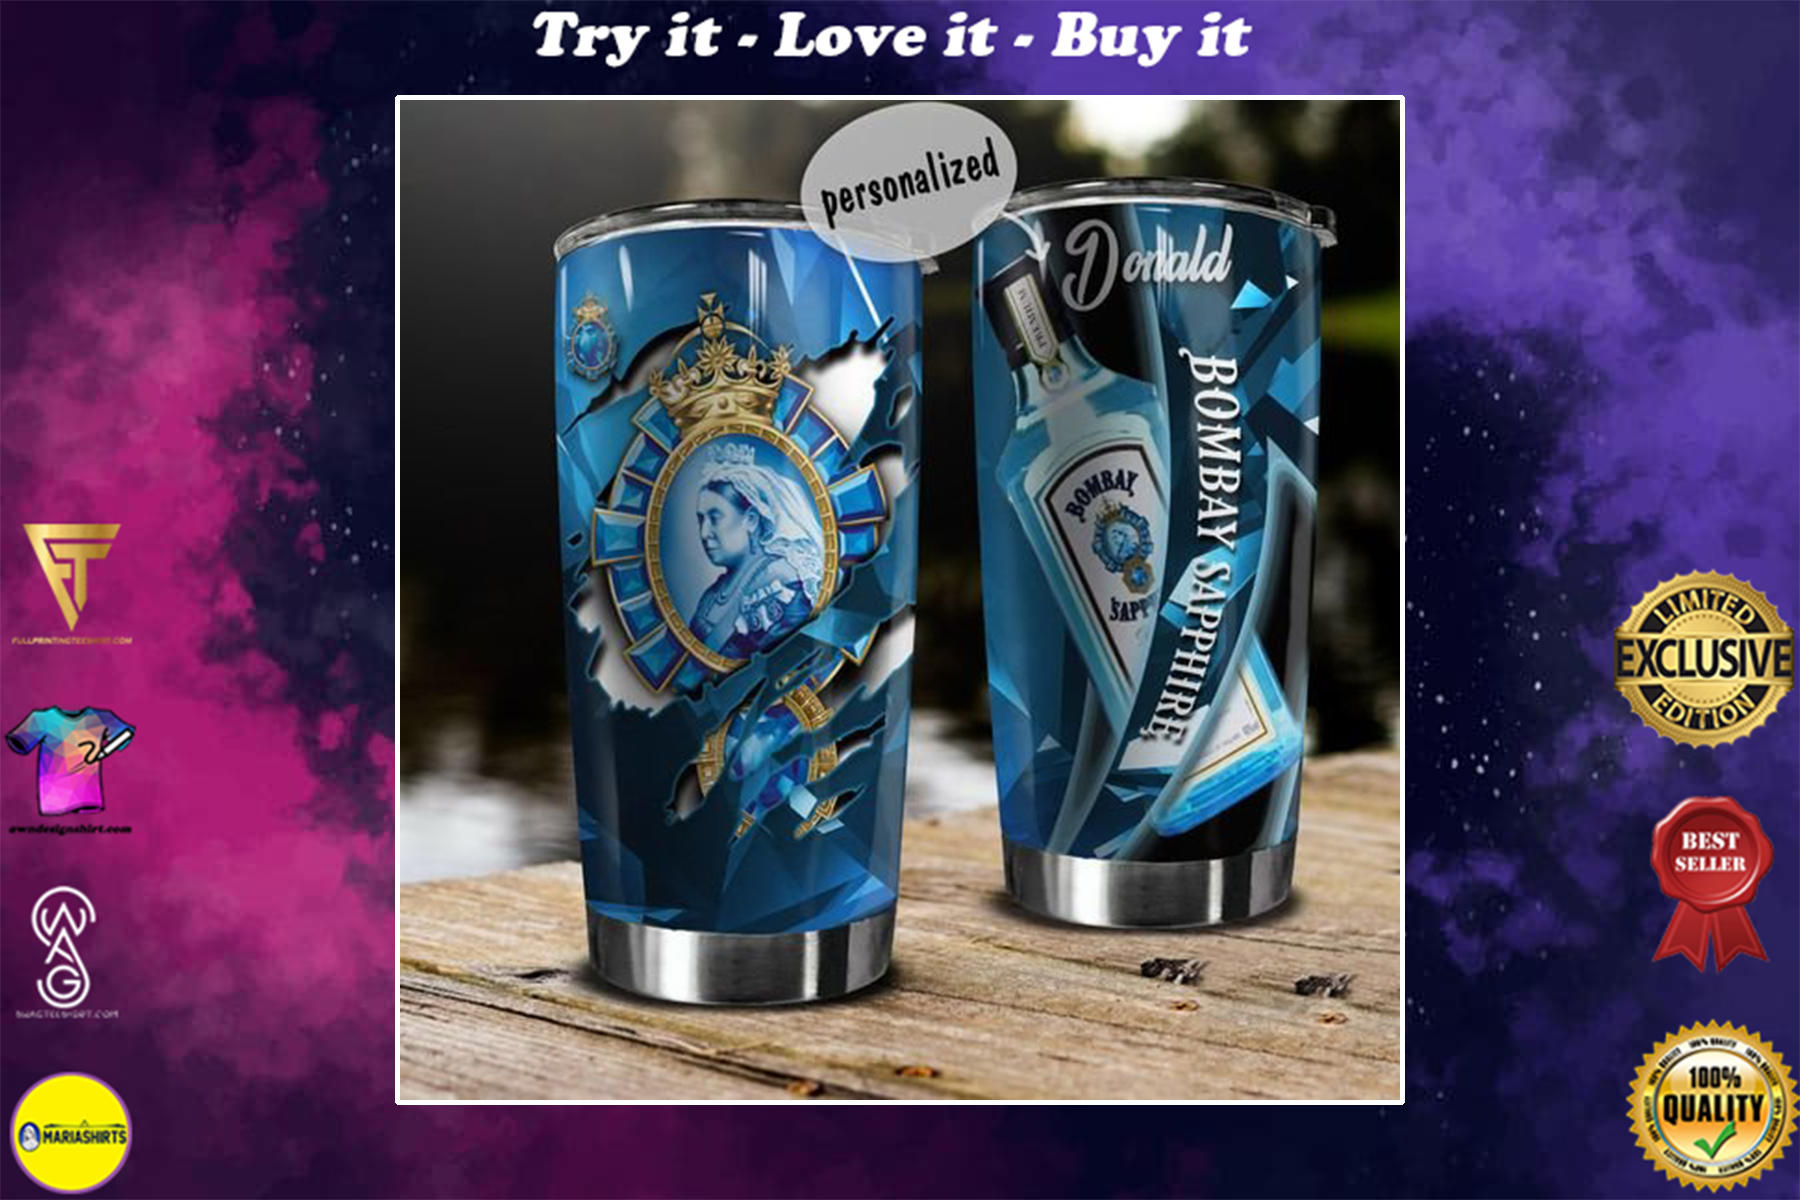 personalized name bombay sapphire gin tumbler